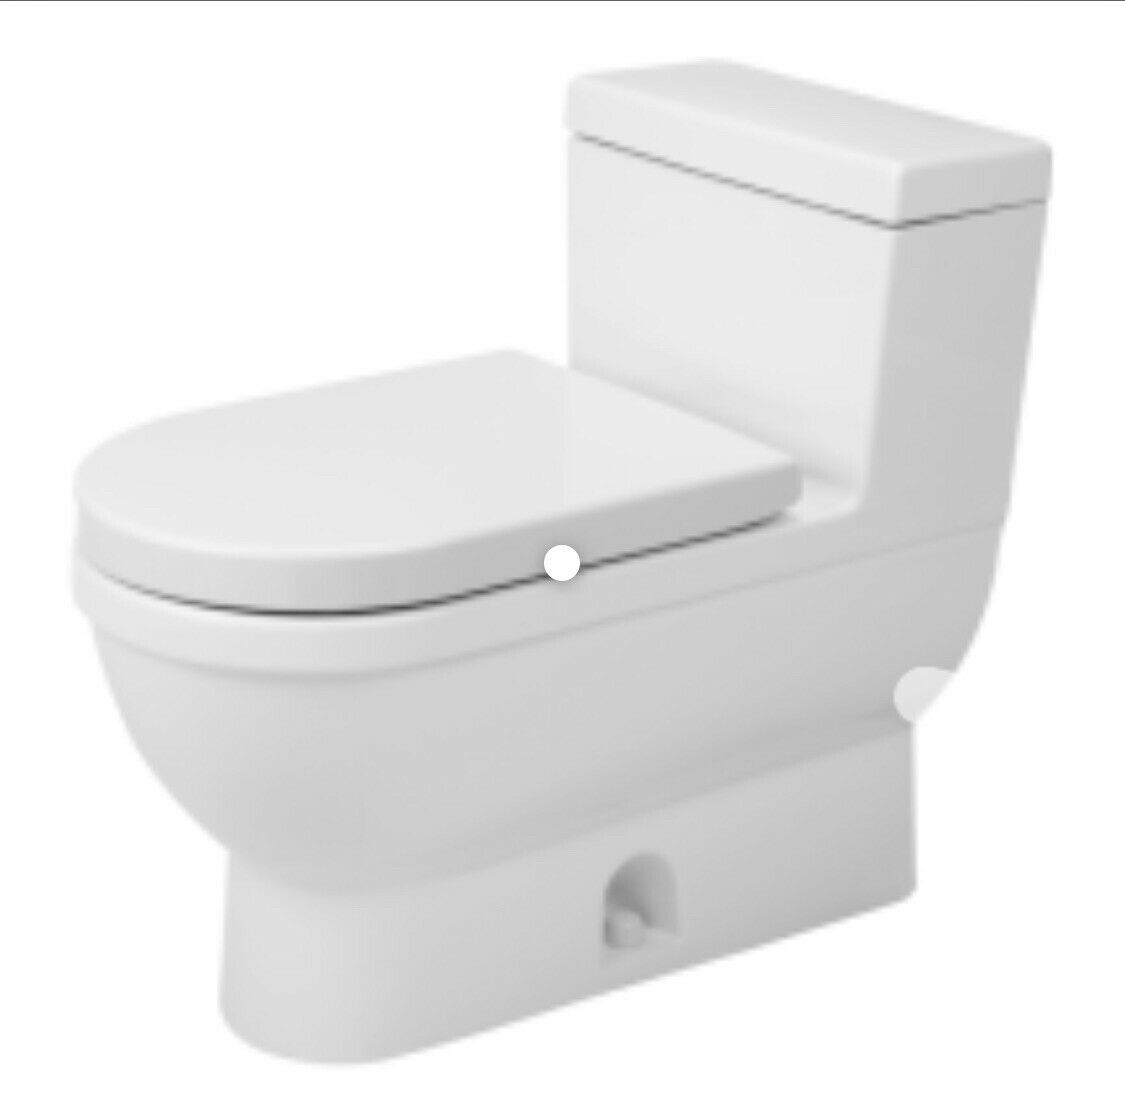 Https Ift Tt 2ourq1b Toilets Ideas Of Toilets Toilets Duracit Toilet Bowl New Open Box Home Depot Toilets Toilet Toilet Bowl